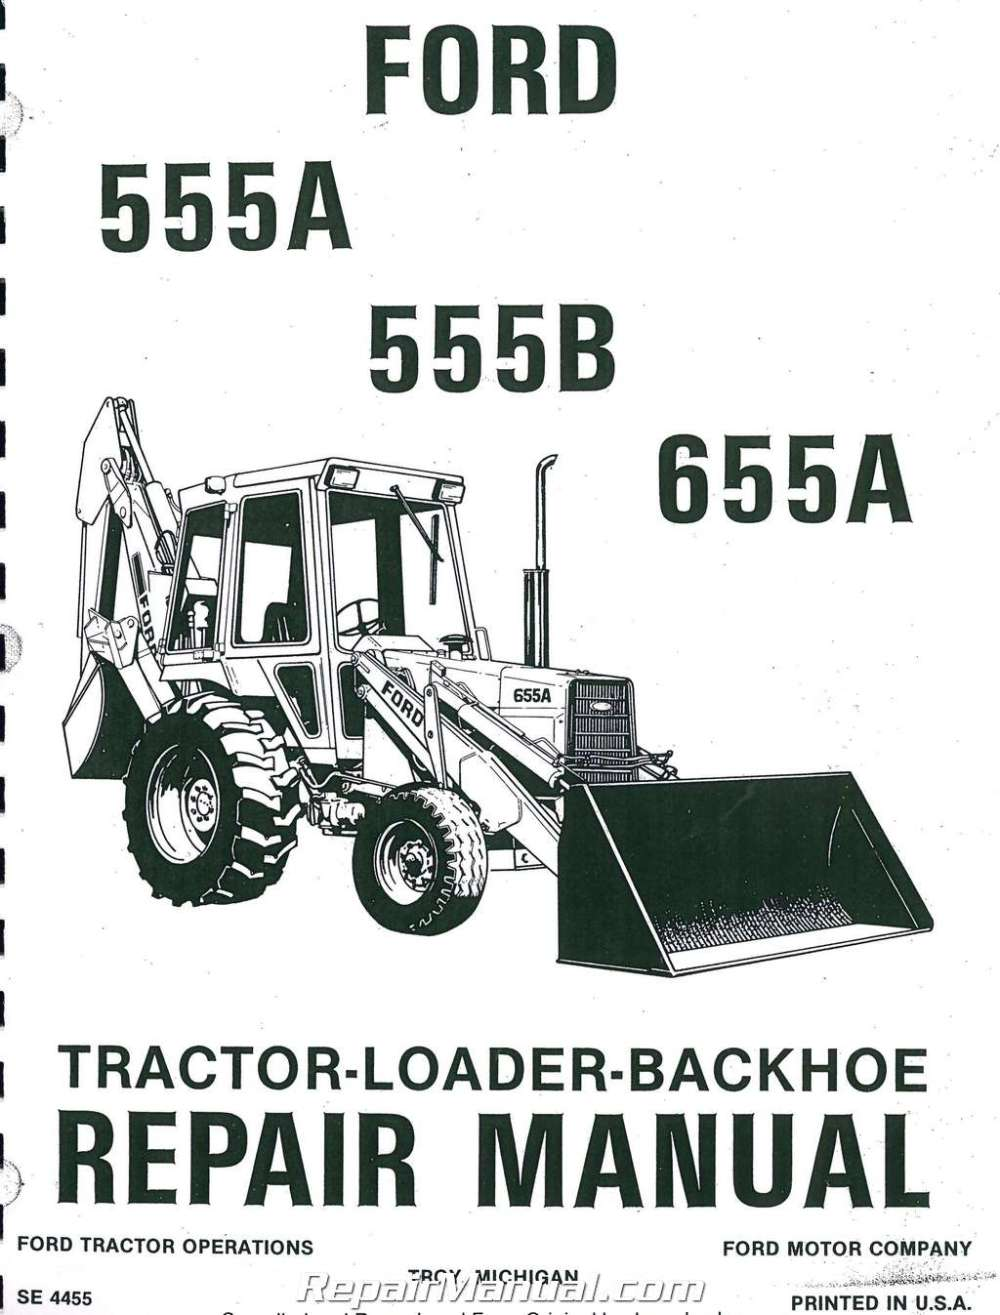 medium resolution of ford 555a 555b 655a tractor loader backhoe printed service manual